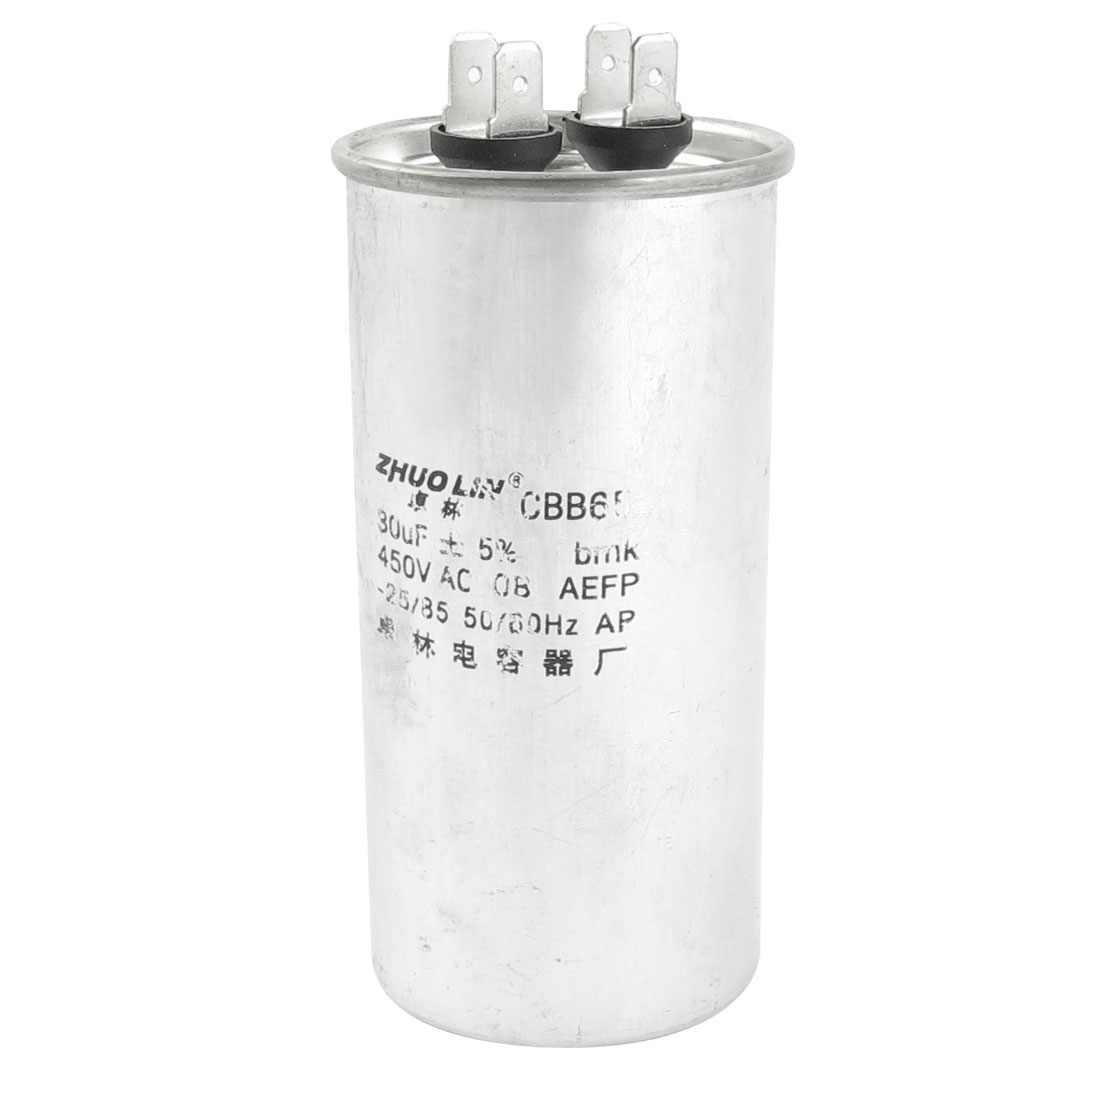 CBB65 AC 450V 30uF 5% Cylinder Shaped Polypropylene Film Motor Capacitor for Air Conditioner